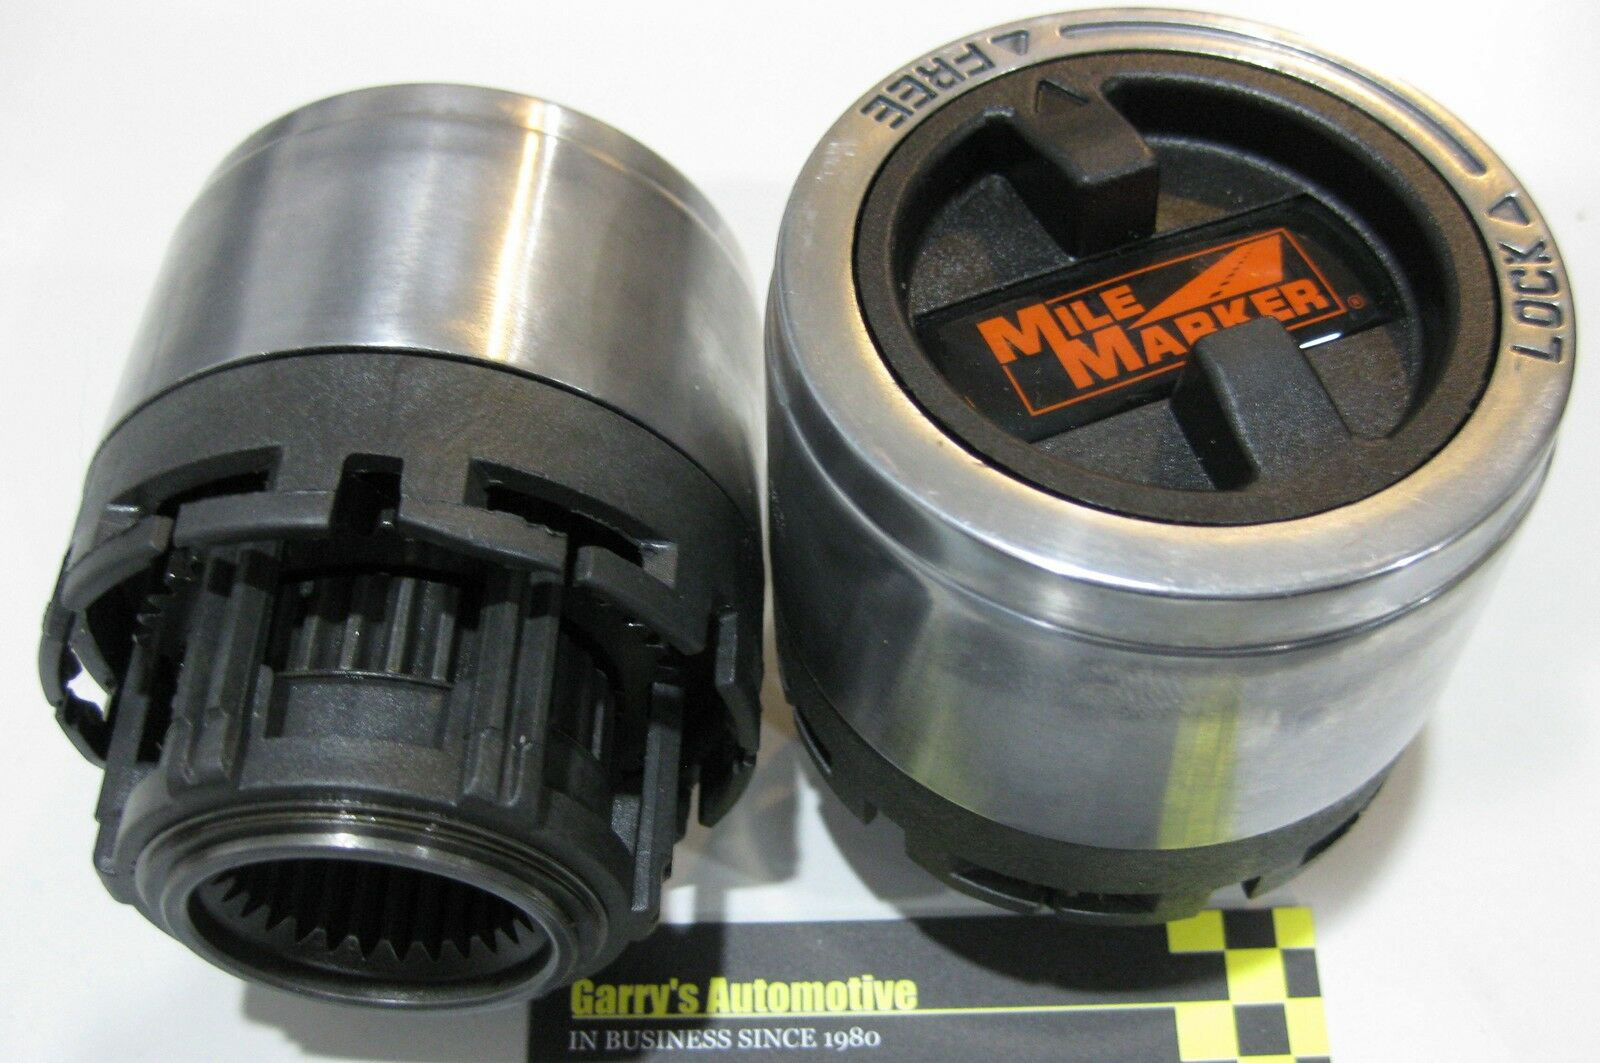 Mile Marker 426 4WD Manual Locking Hub 98-00 Ford Ranger 01-08 Mazda 1 of  1Only 2 available See More